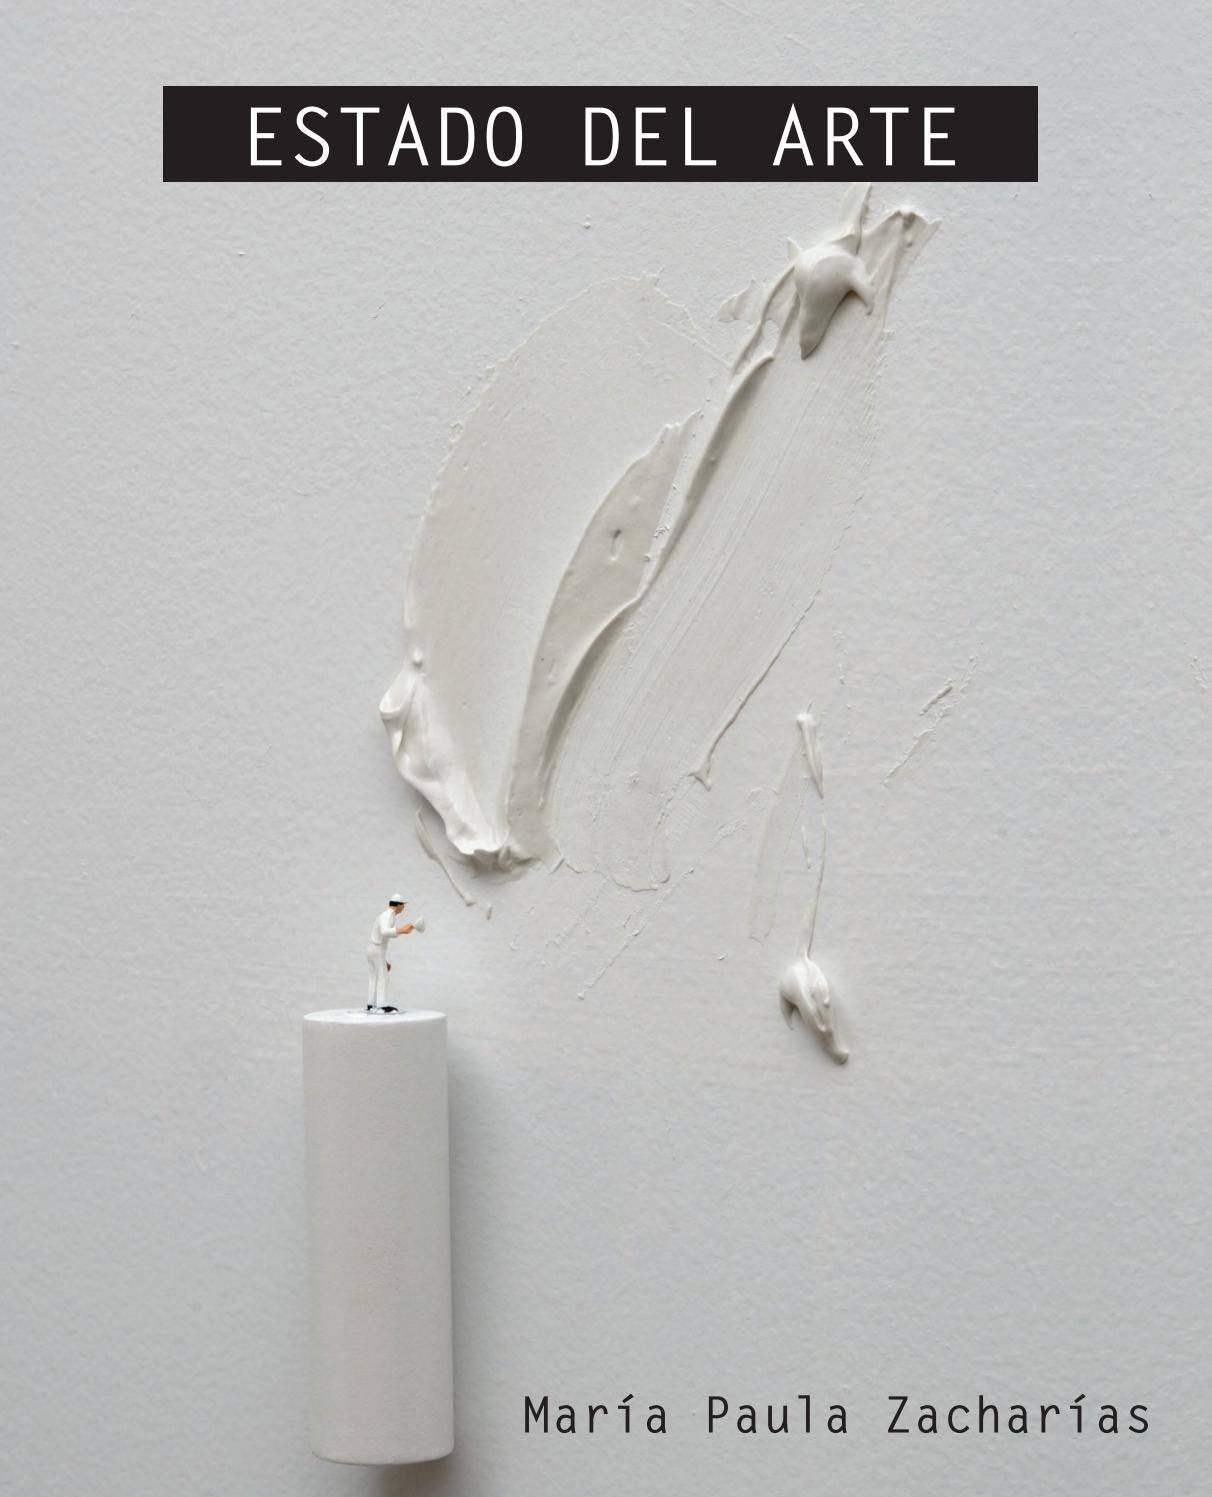 ESTADO DEL ARTE by MinCulturaAr - issuu